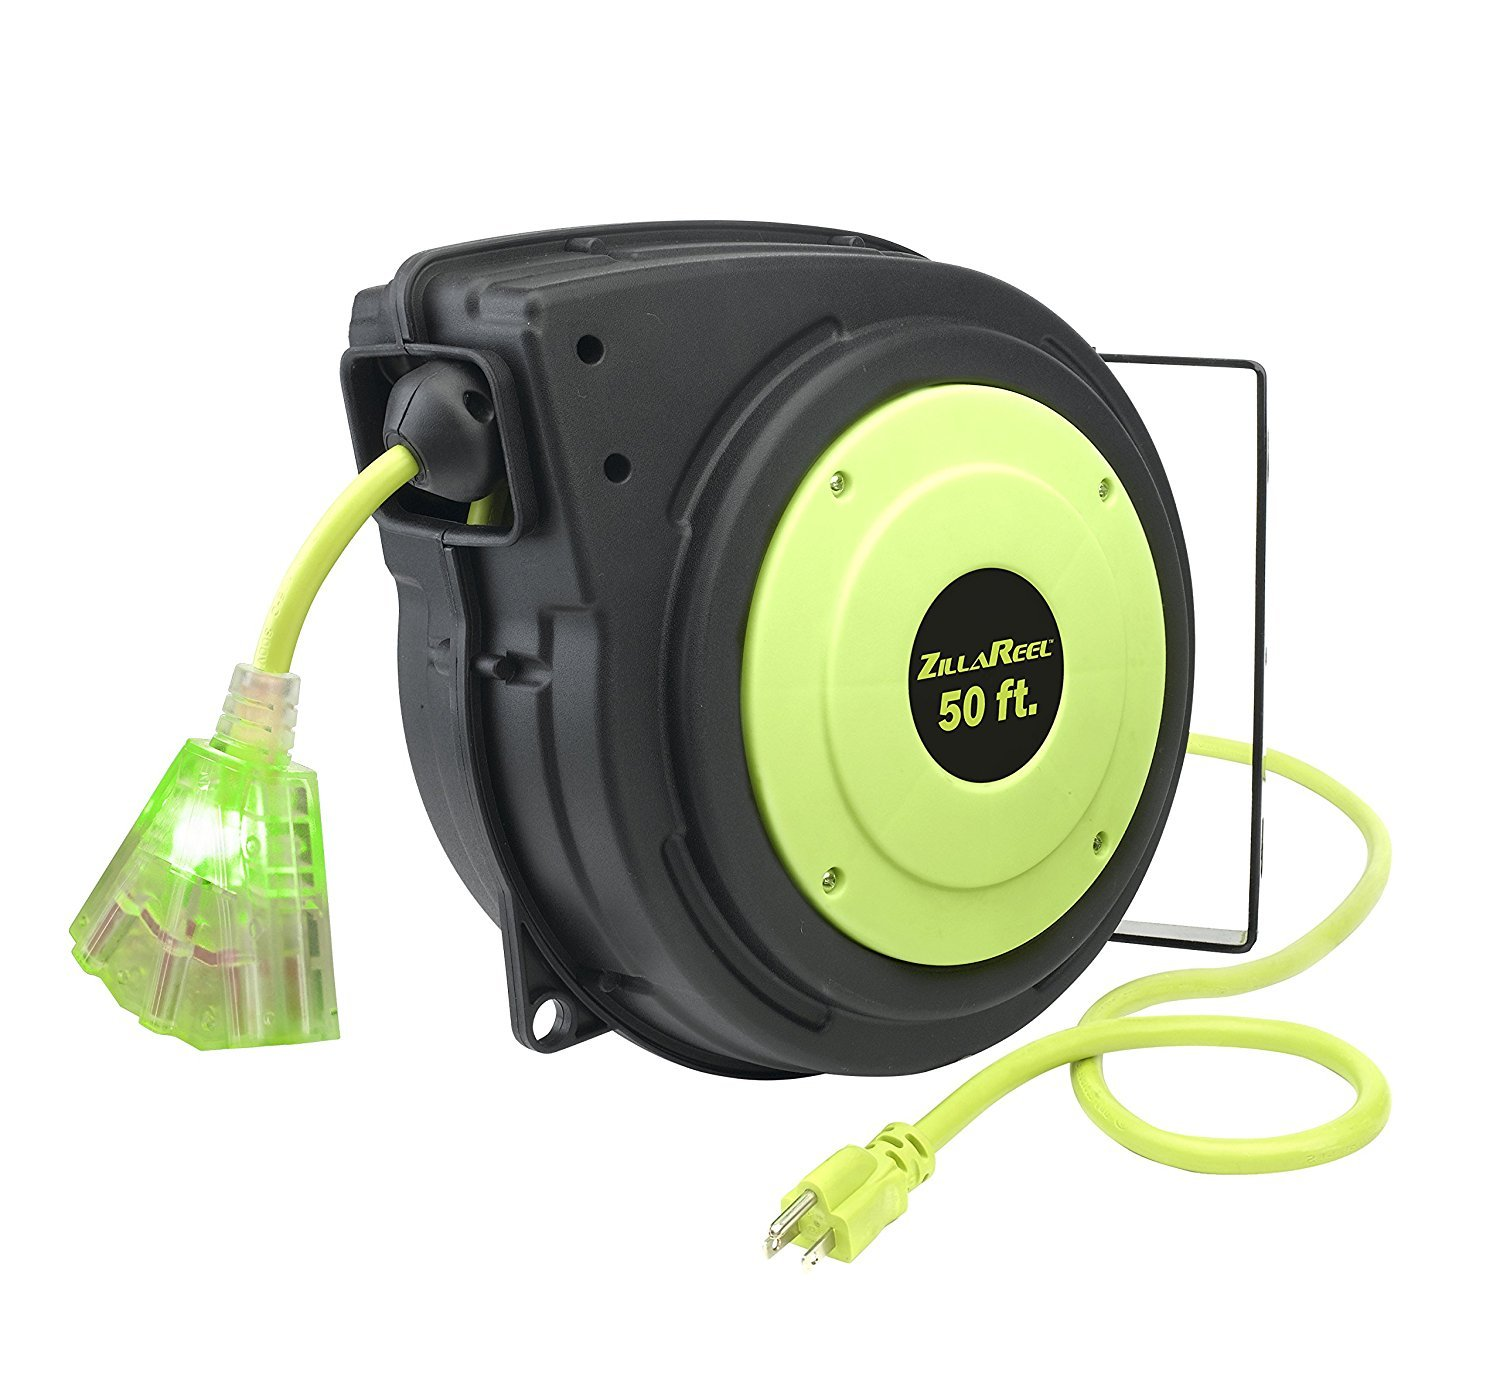 Flexzilla E8140503-AMZ Zillareel 50' Retractable Extension Cord Reel with Triple Plug by Flexzilla (Image #1)